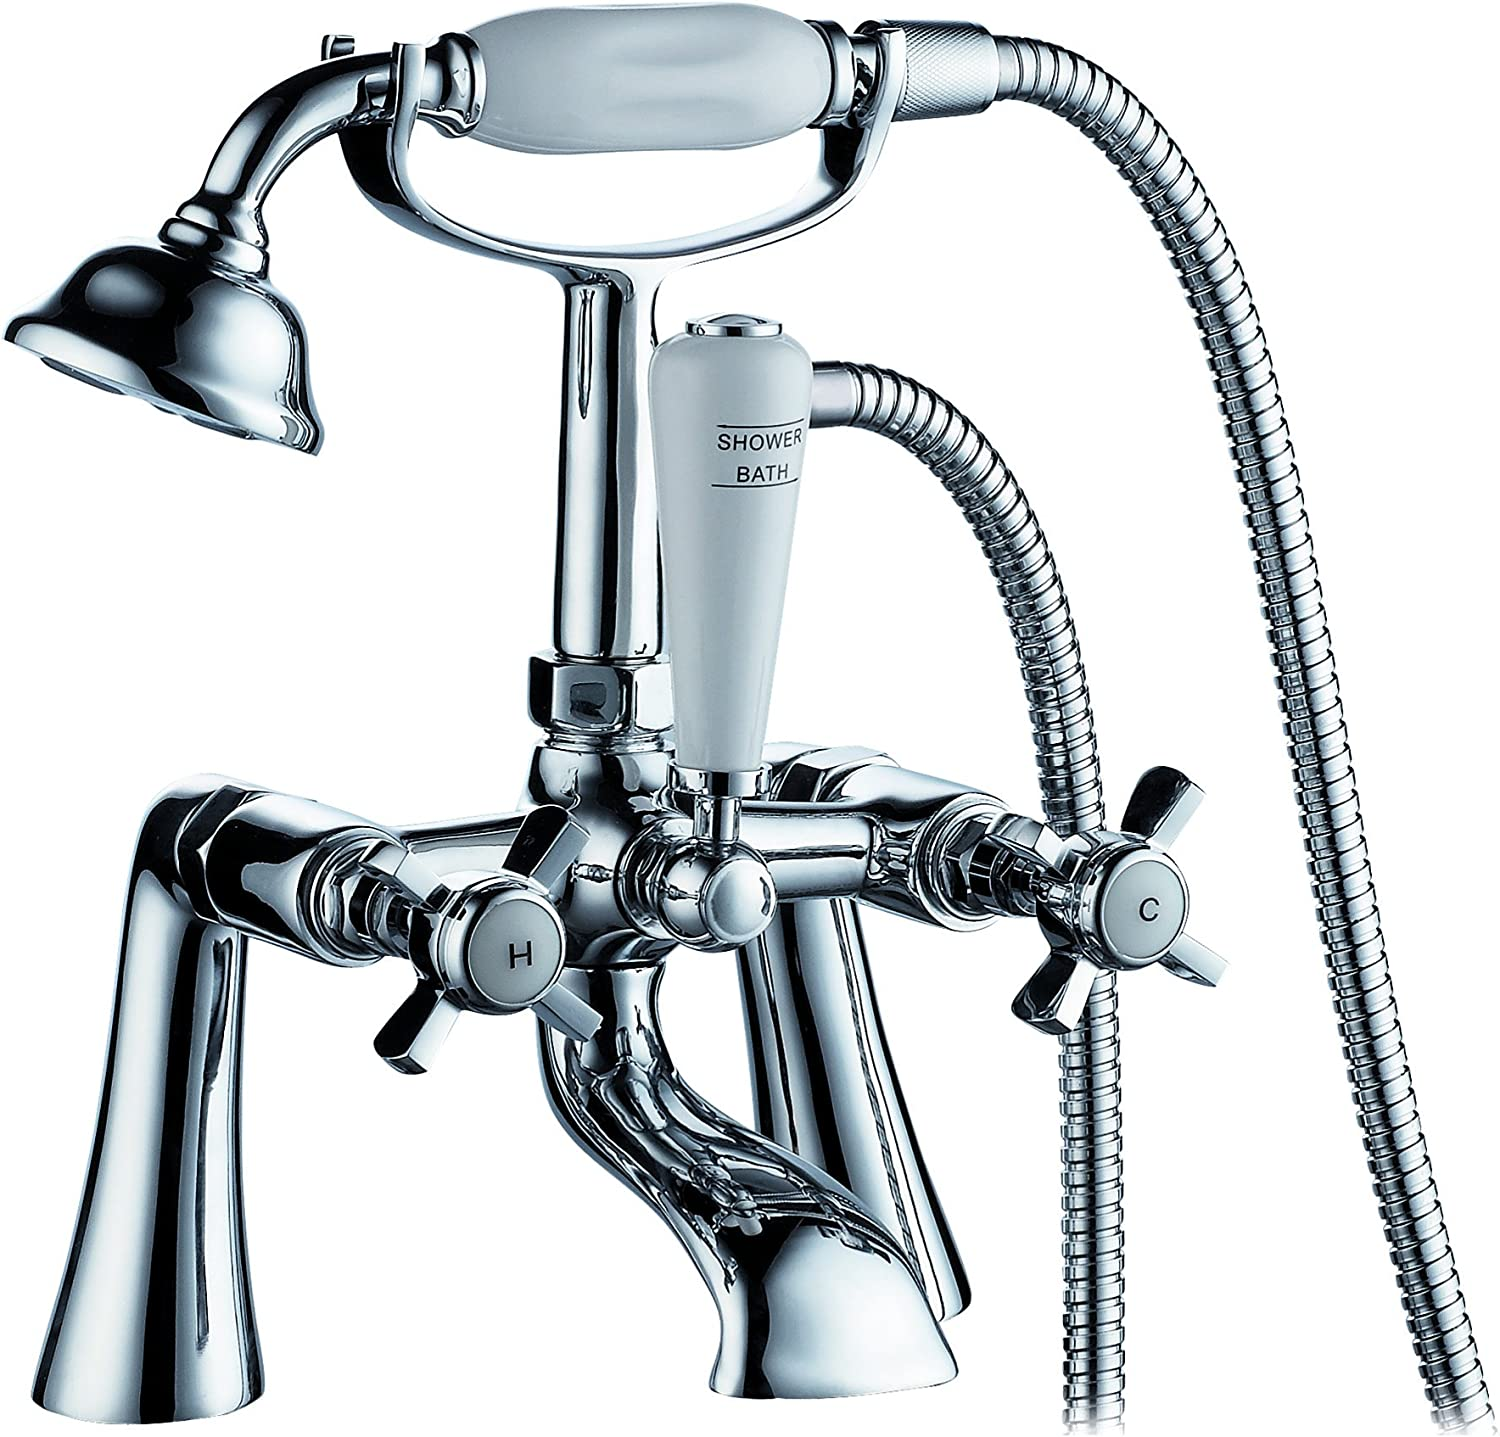 Niagara 9134 Bathroom Brassware, Chrome